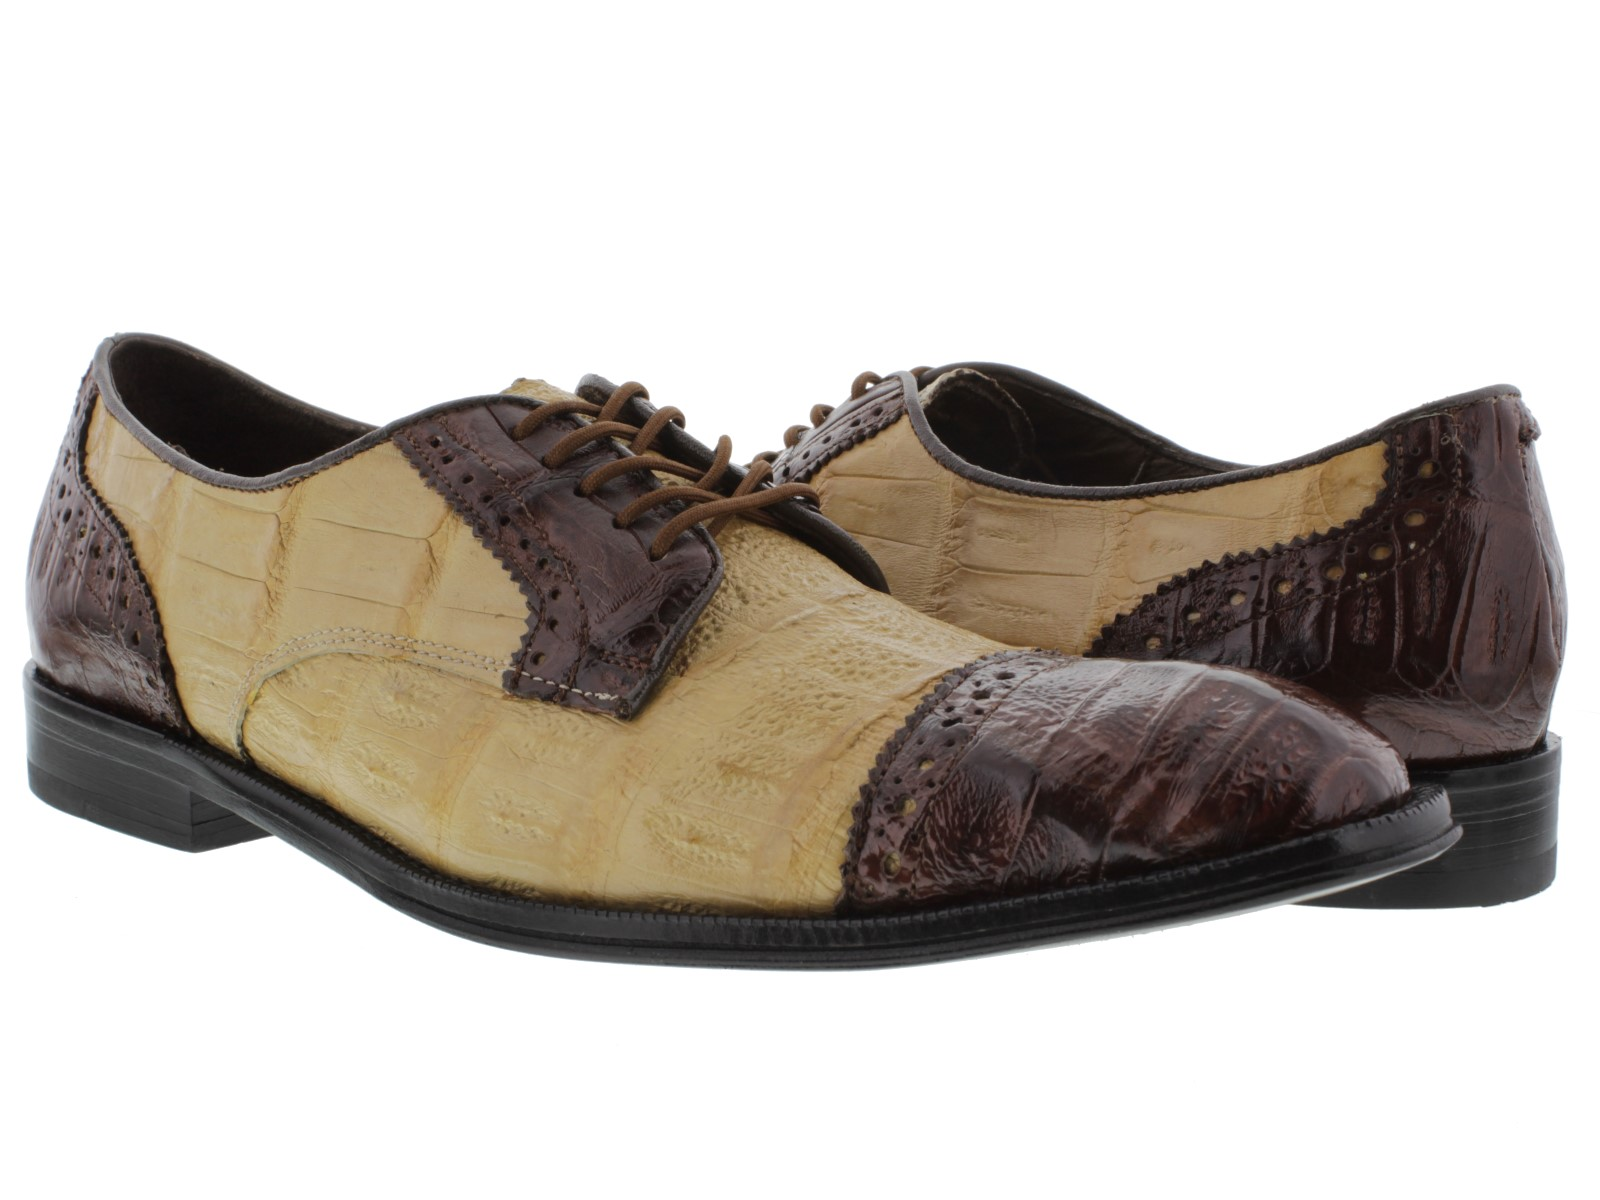 Brown Gator Shoes